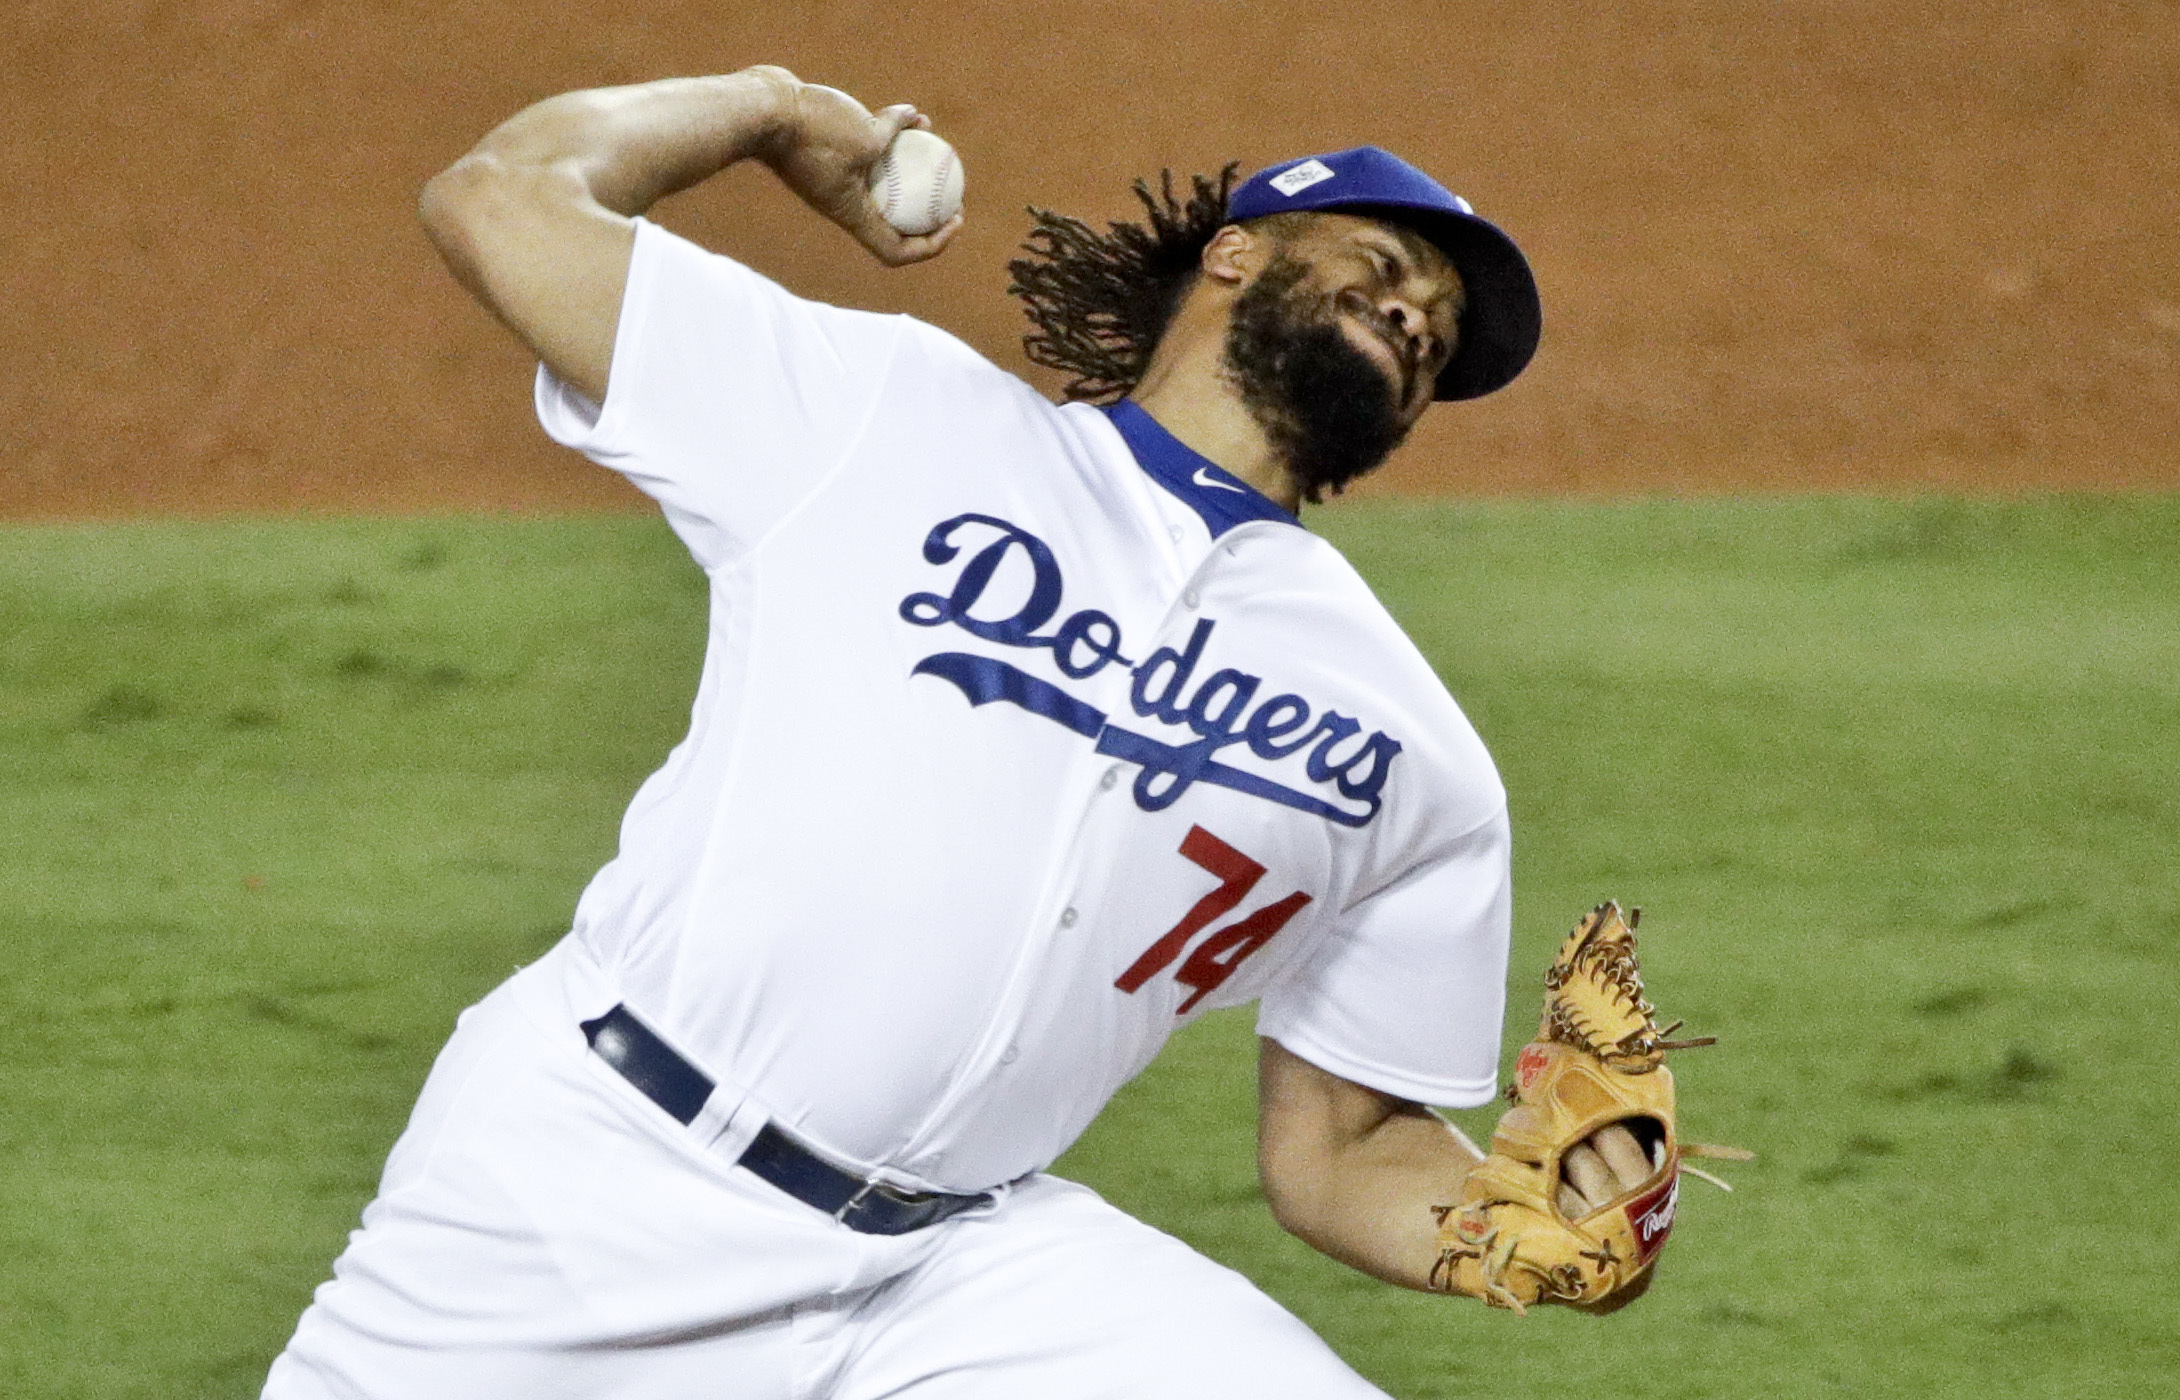 Los Angeles Dodgers relief pitcher Kenley Jansen throws against the Houston Astros during the seventh inning of Game 7 of baseball's World Series Wednesday, Nov. 1, 2017, in Los Angeles. (AP Photo/Jae C. Hong)